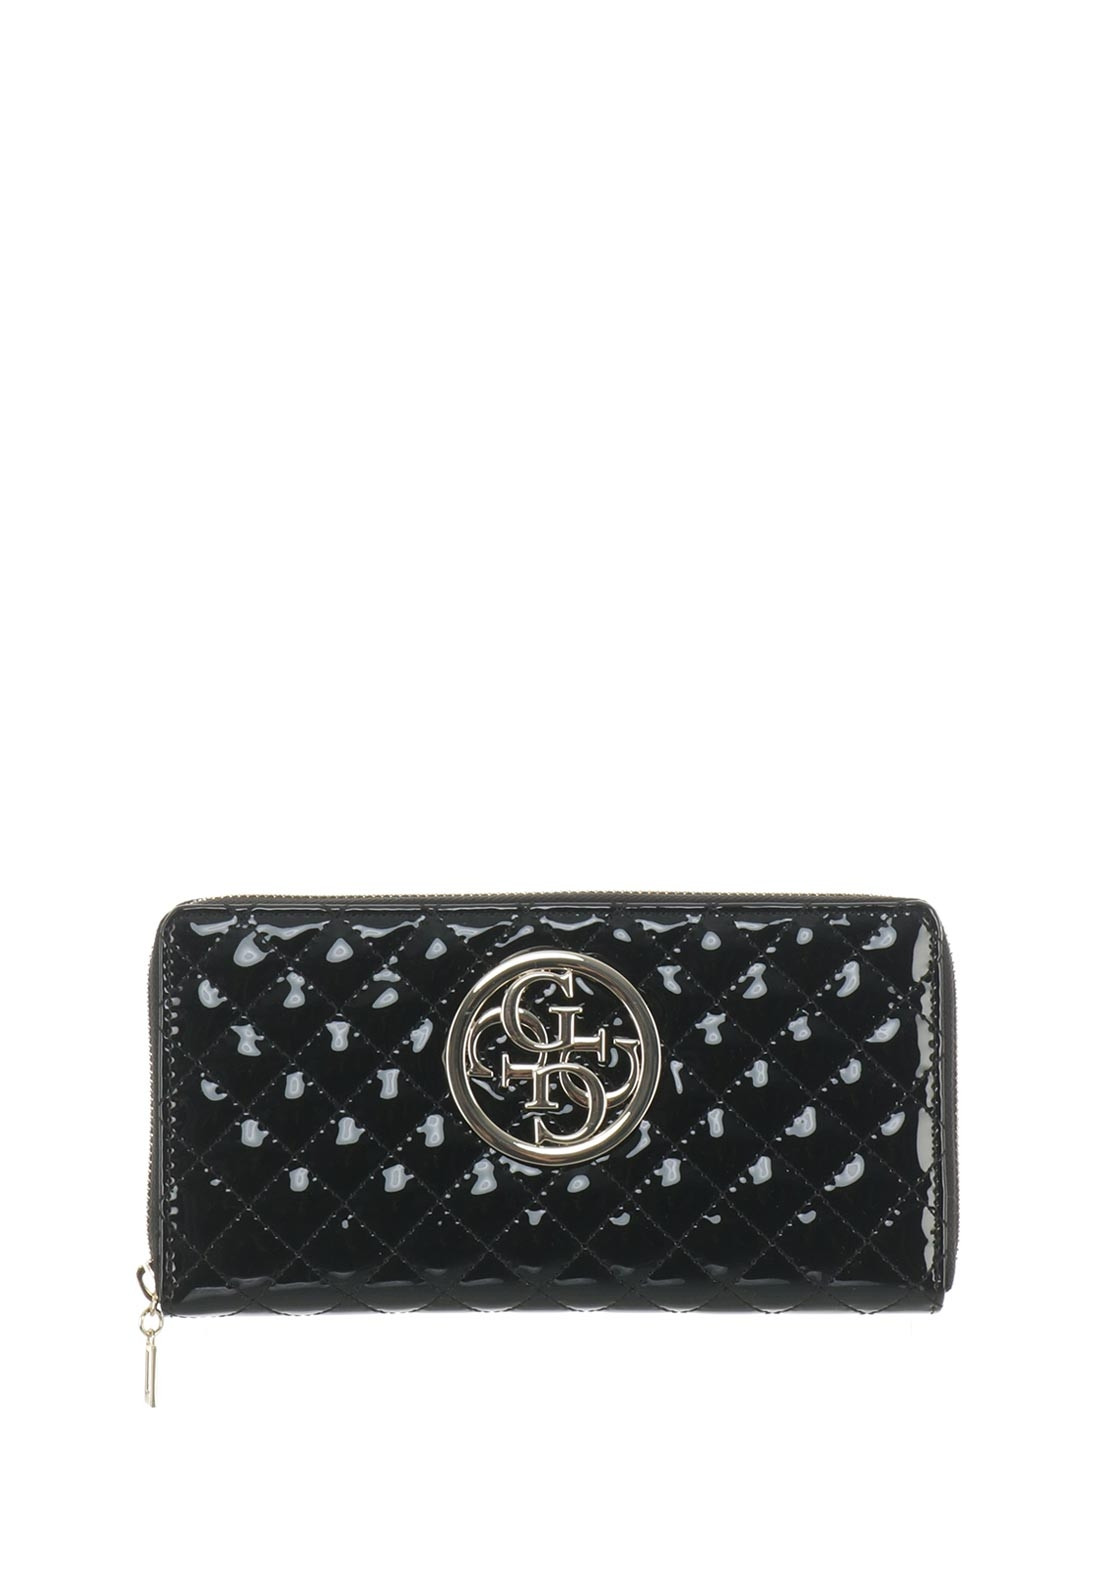 f83d250aeacf Guess Lux Large Wallet, Gloss Black | McElhinneys